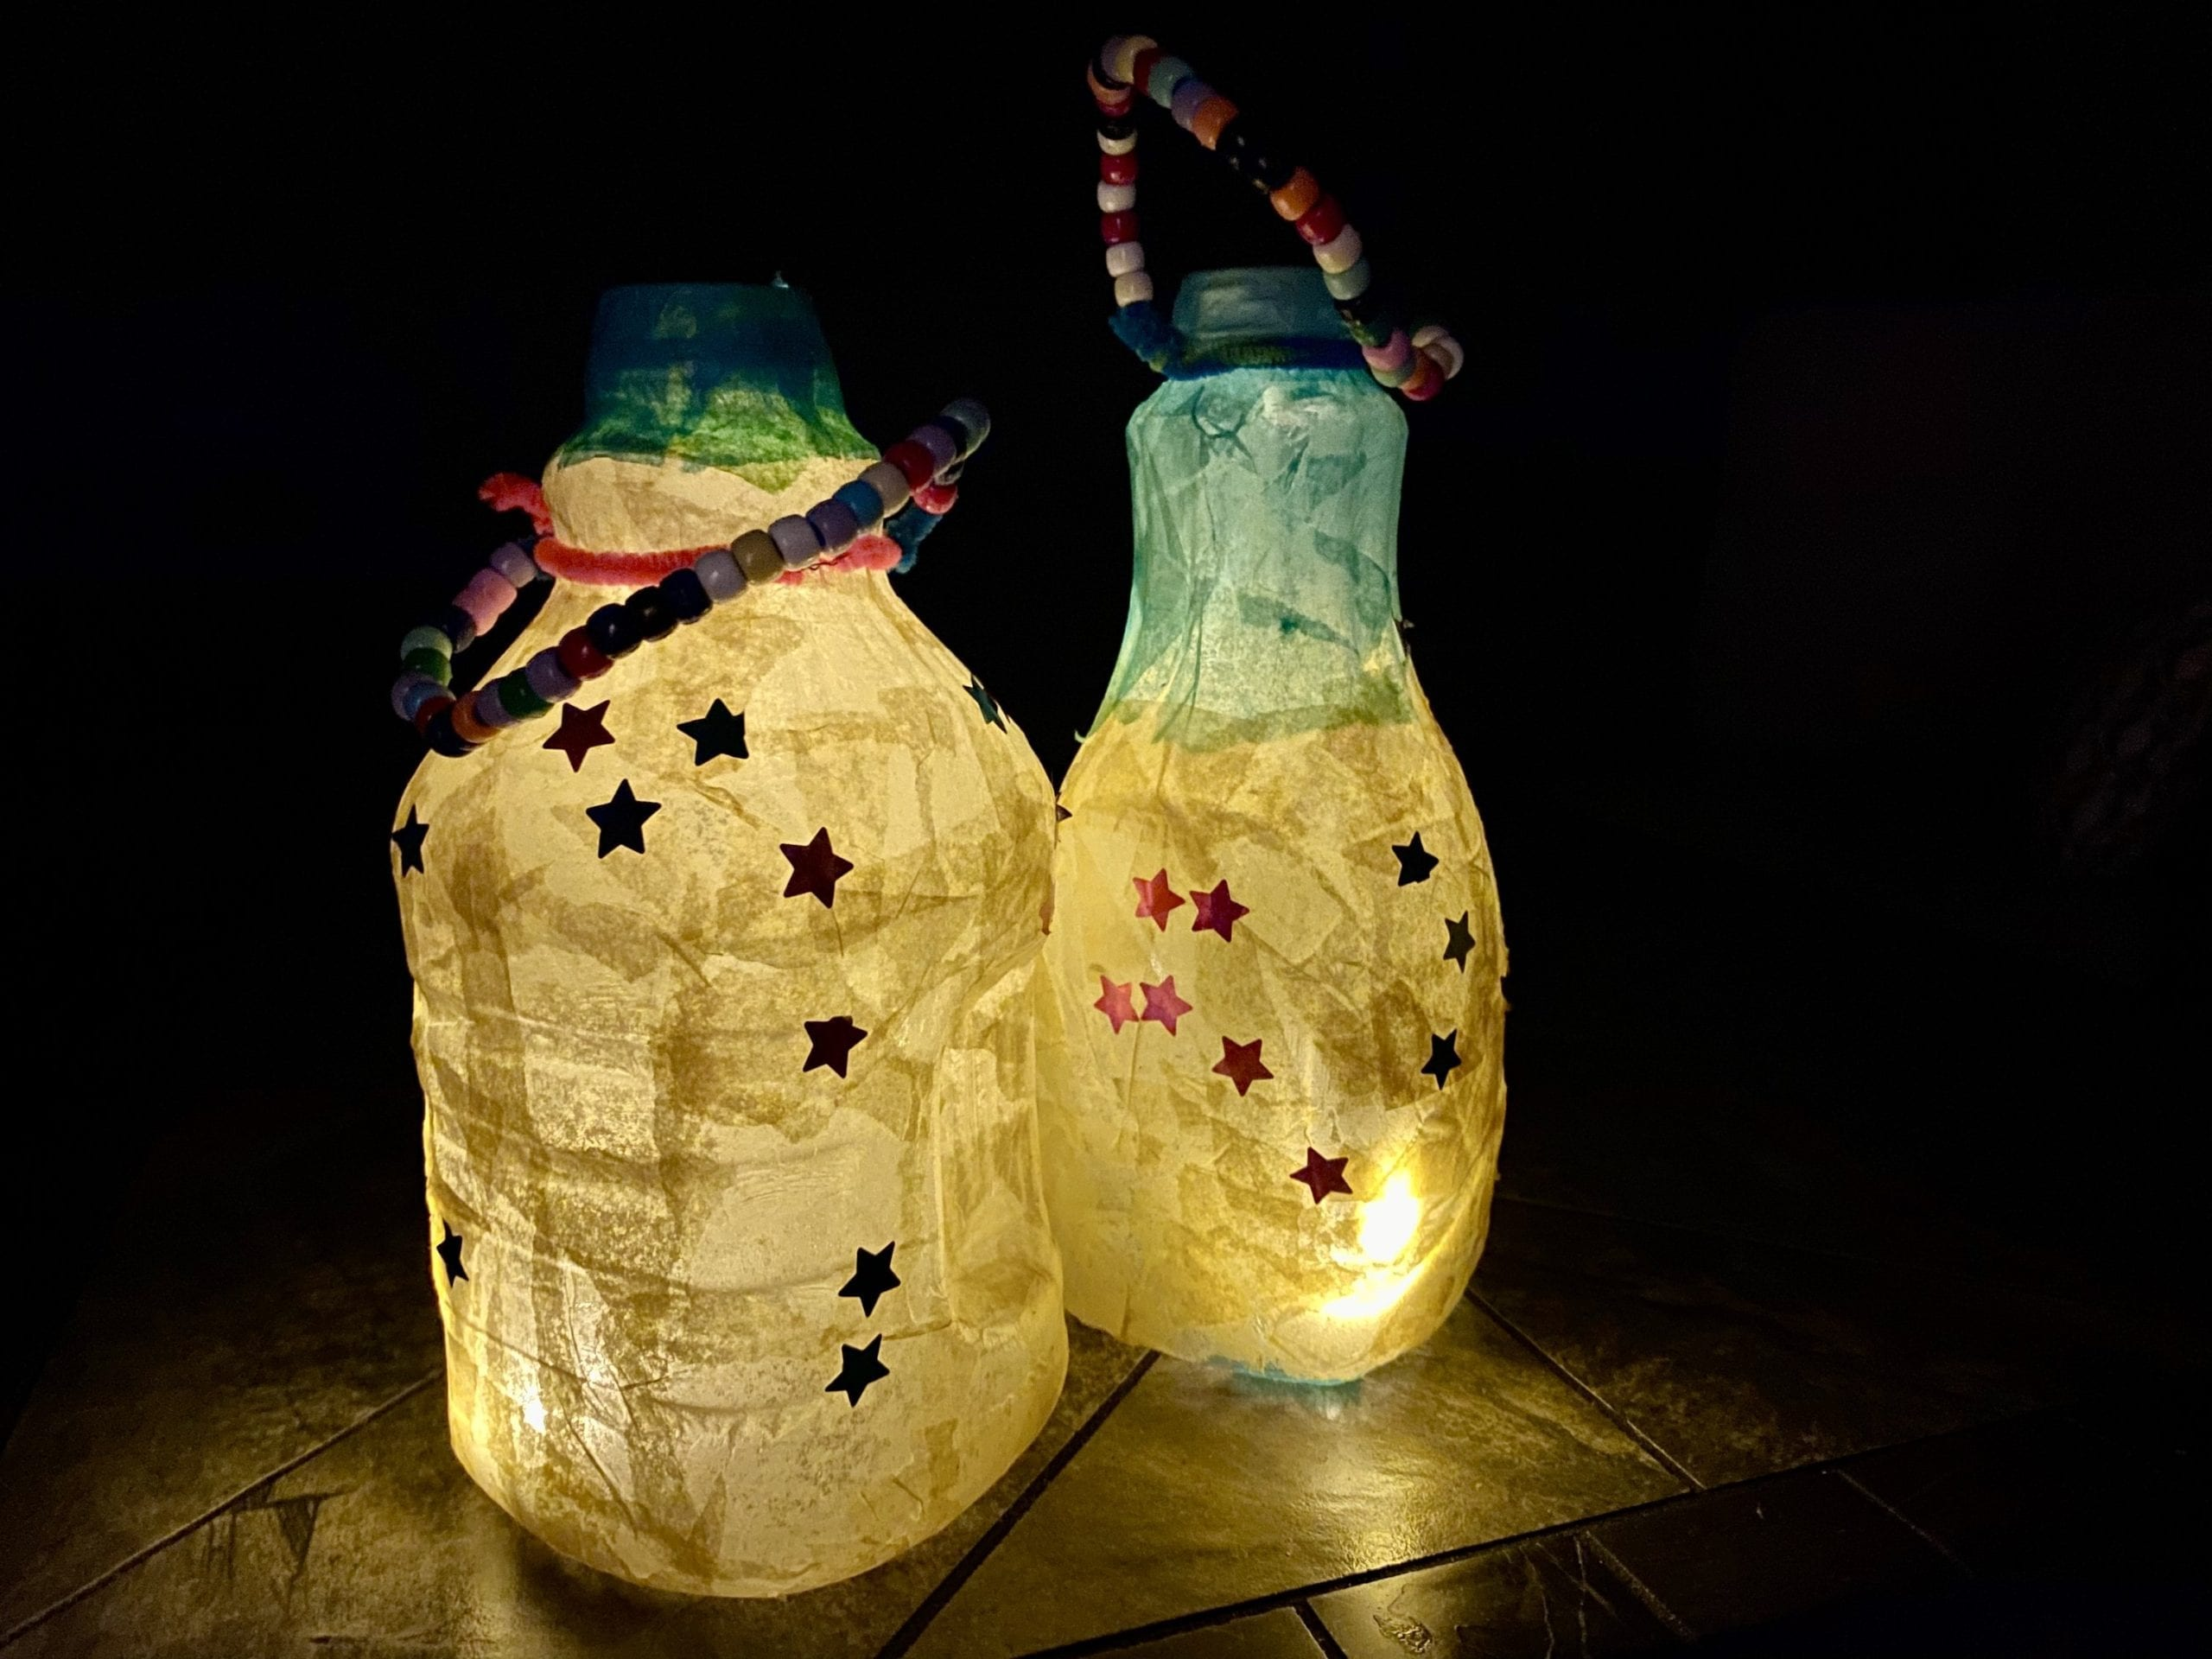 Camping Crafts for Kids: DIY Lanterns (aka Night Lights!)